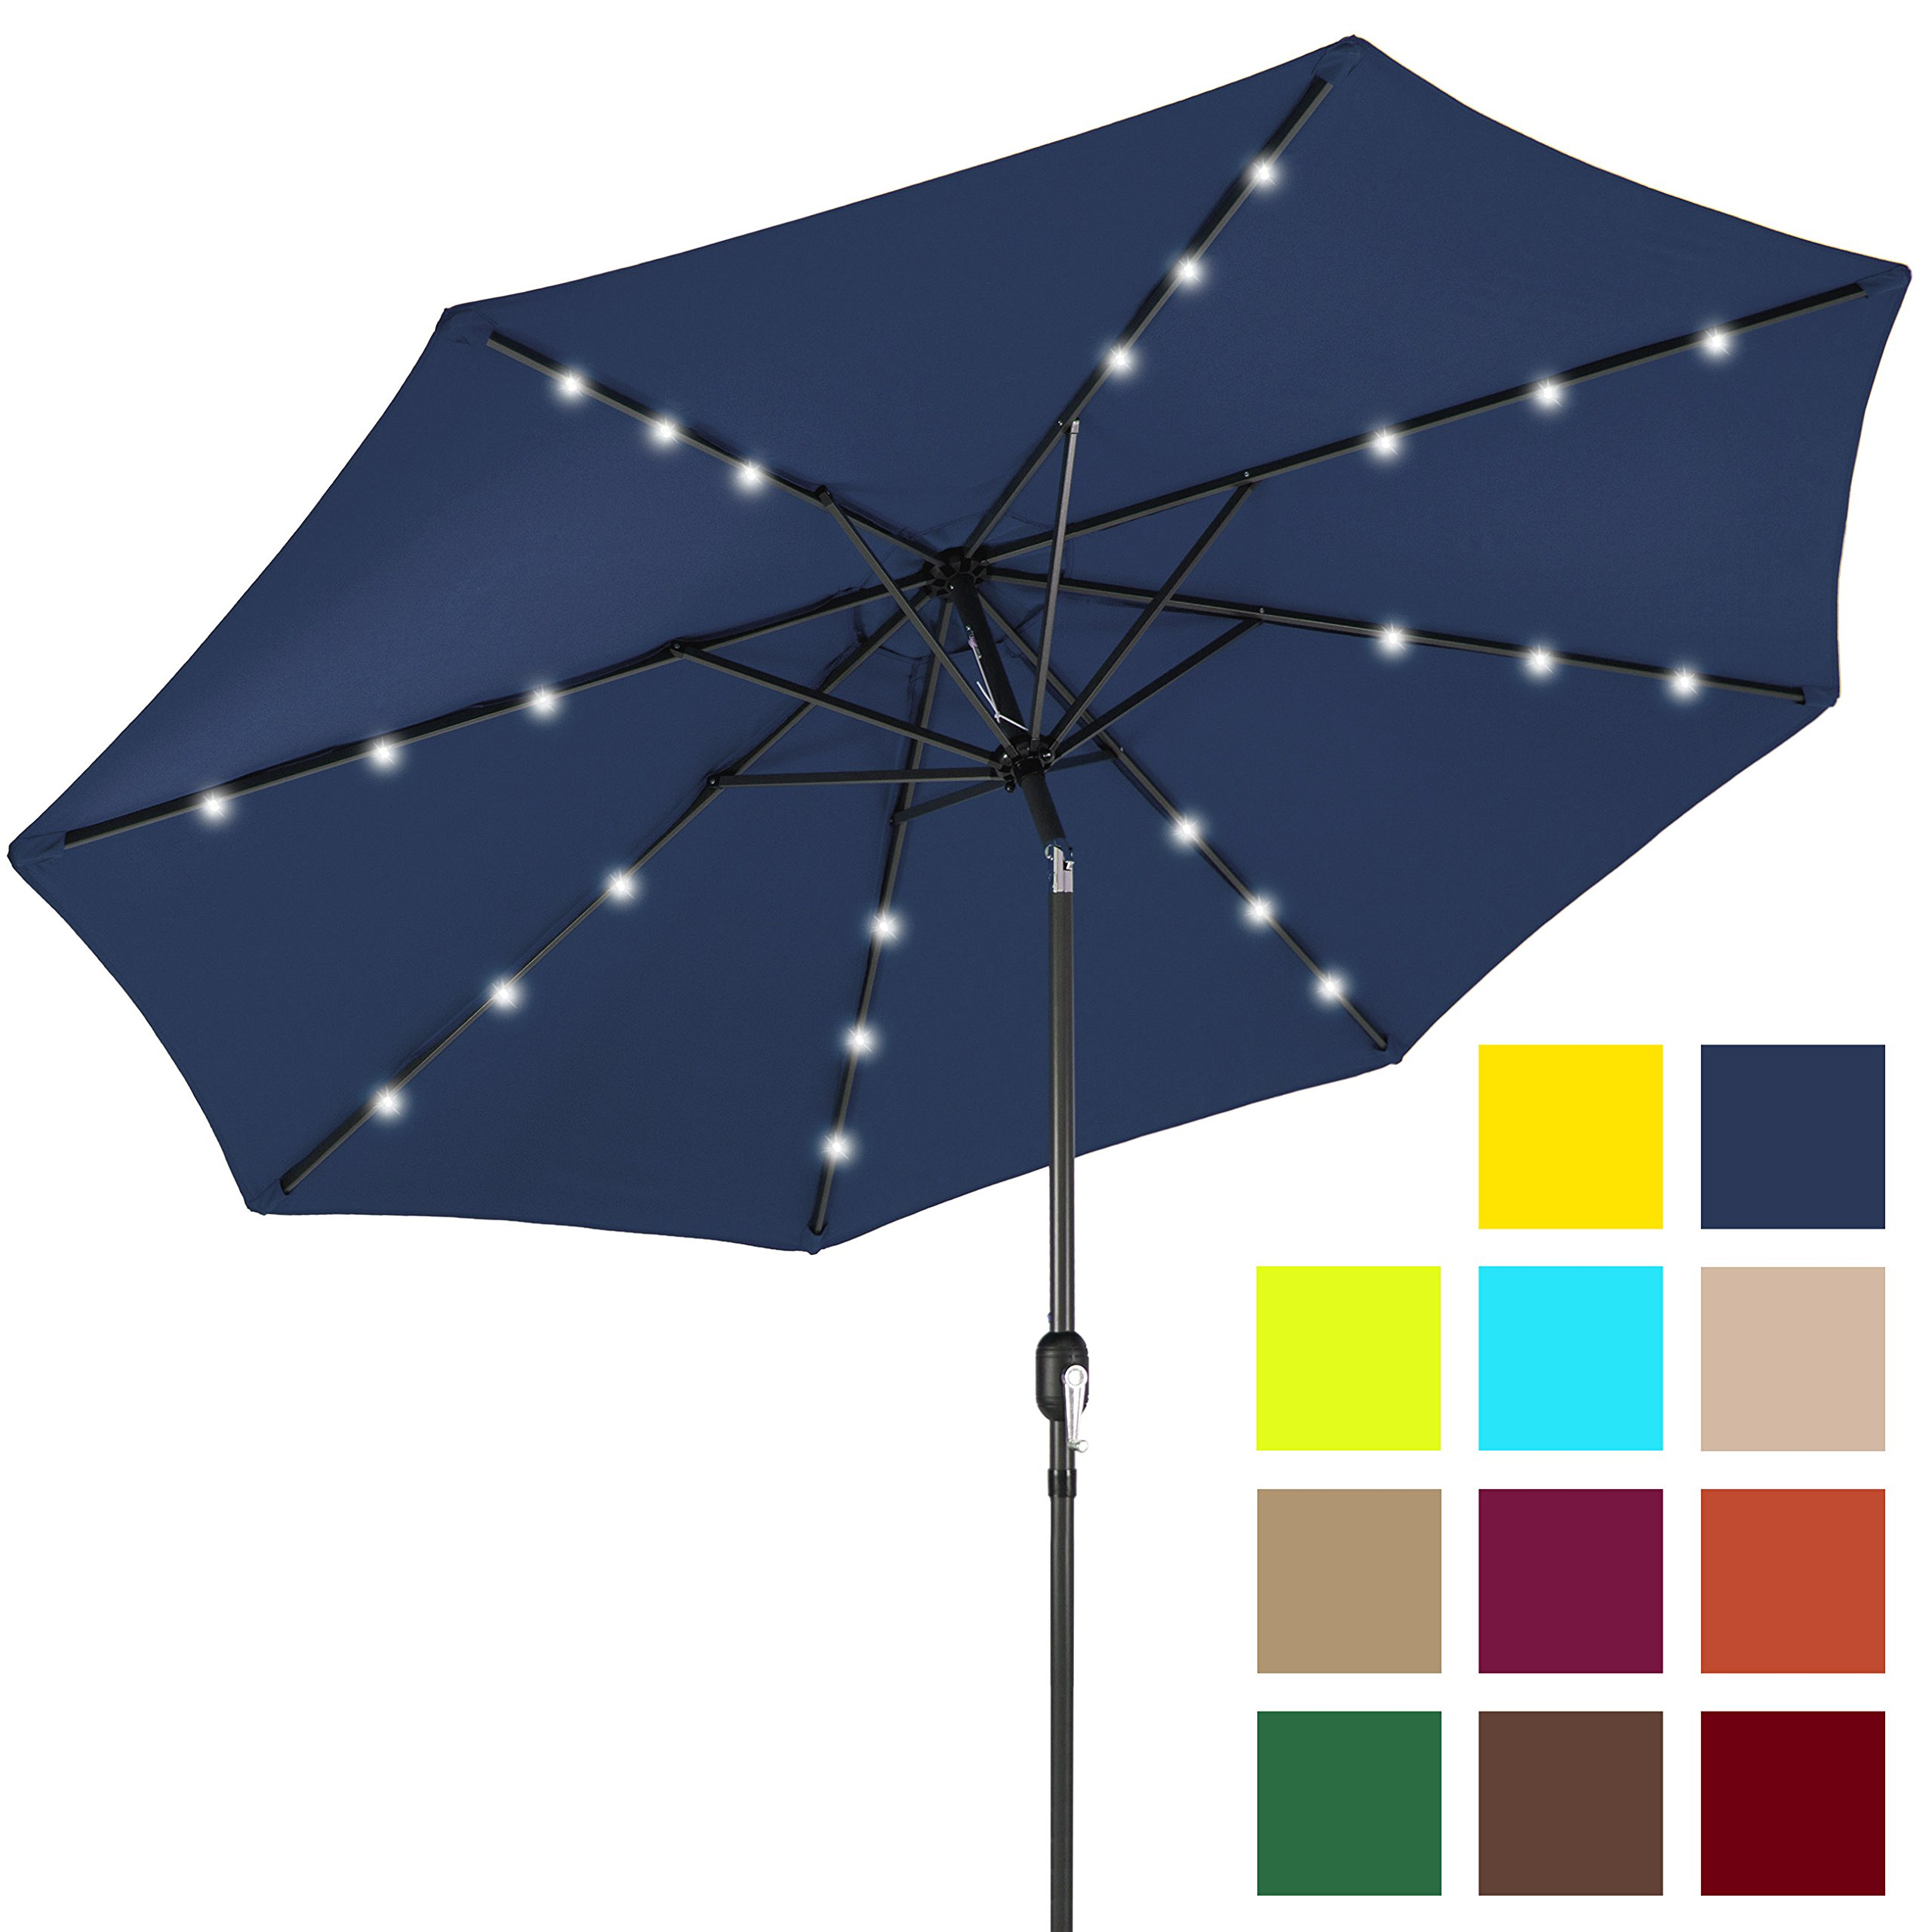 Best Choice Products 10ft Solar LED Lighted Patio Umbrella w/Tilt Adjustment - Navy Blue by Best Choice Products